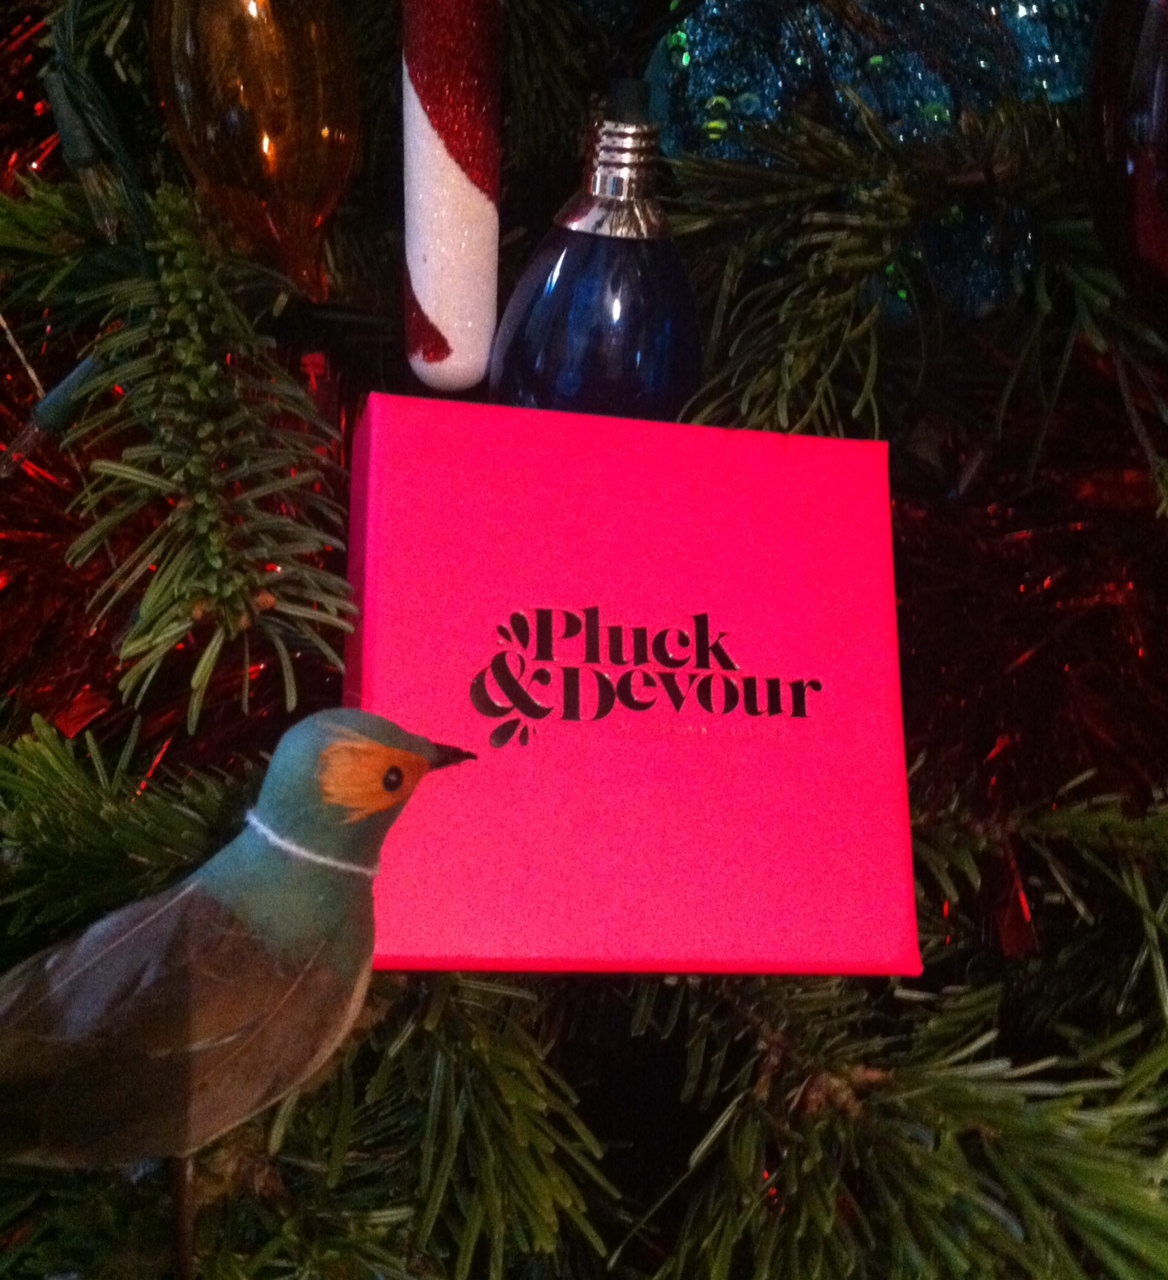 Pluck & Devour For a Last Minute Gift Idea with No Need to Wait for Shipping!